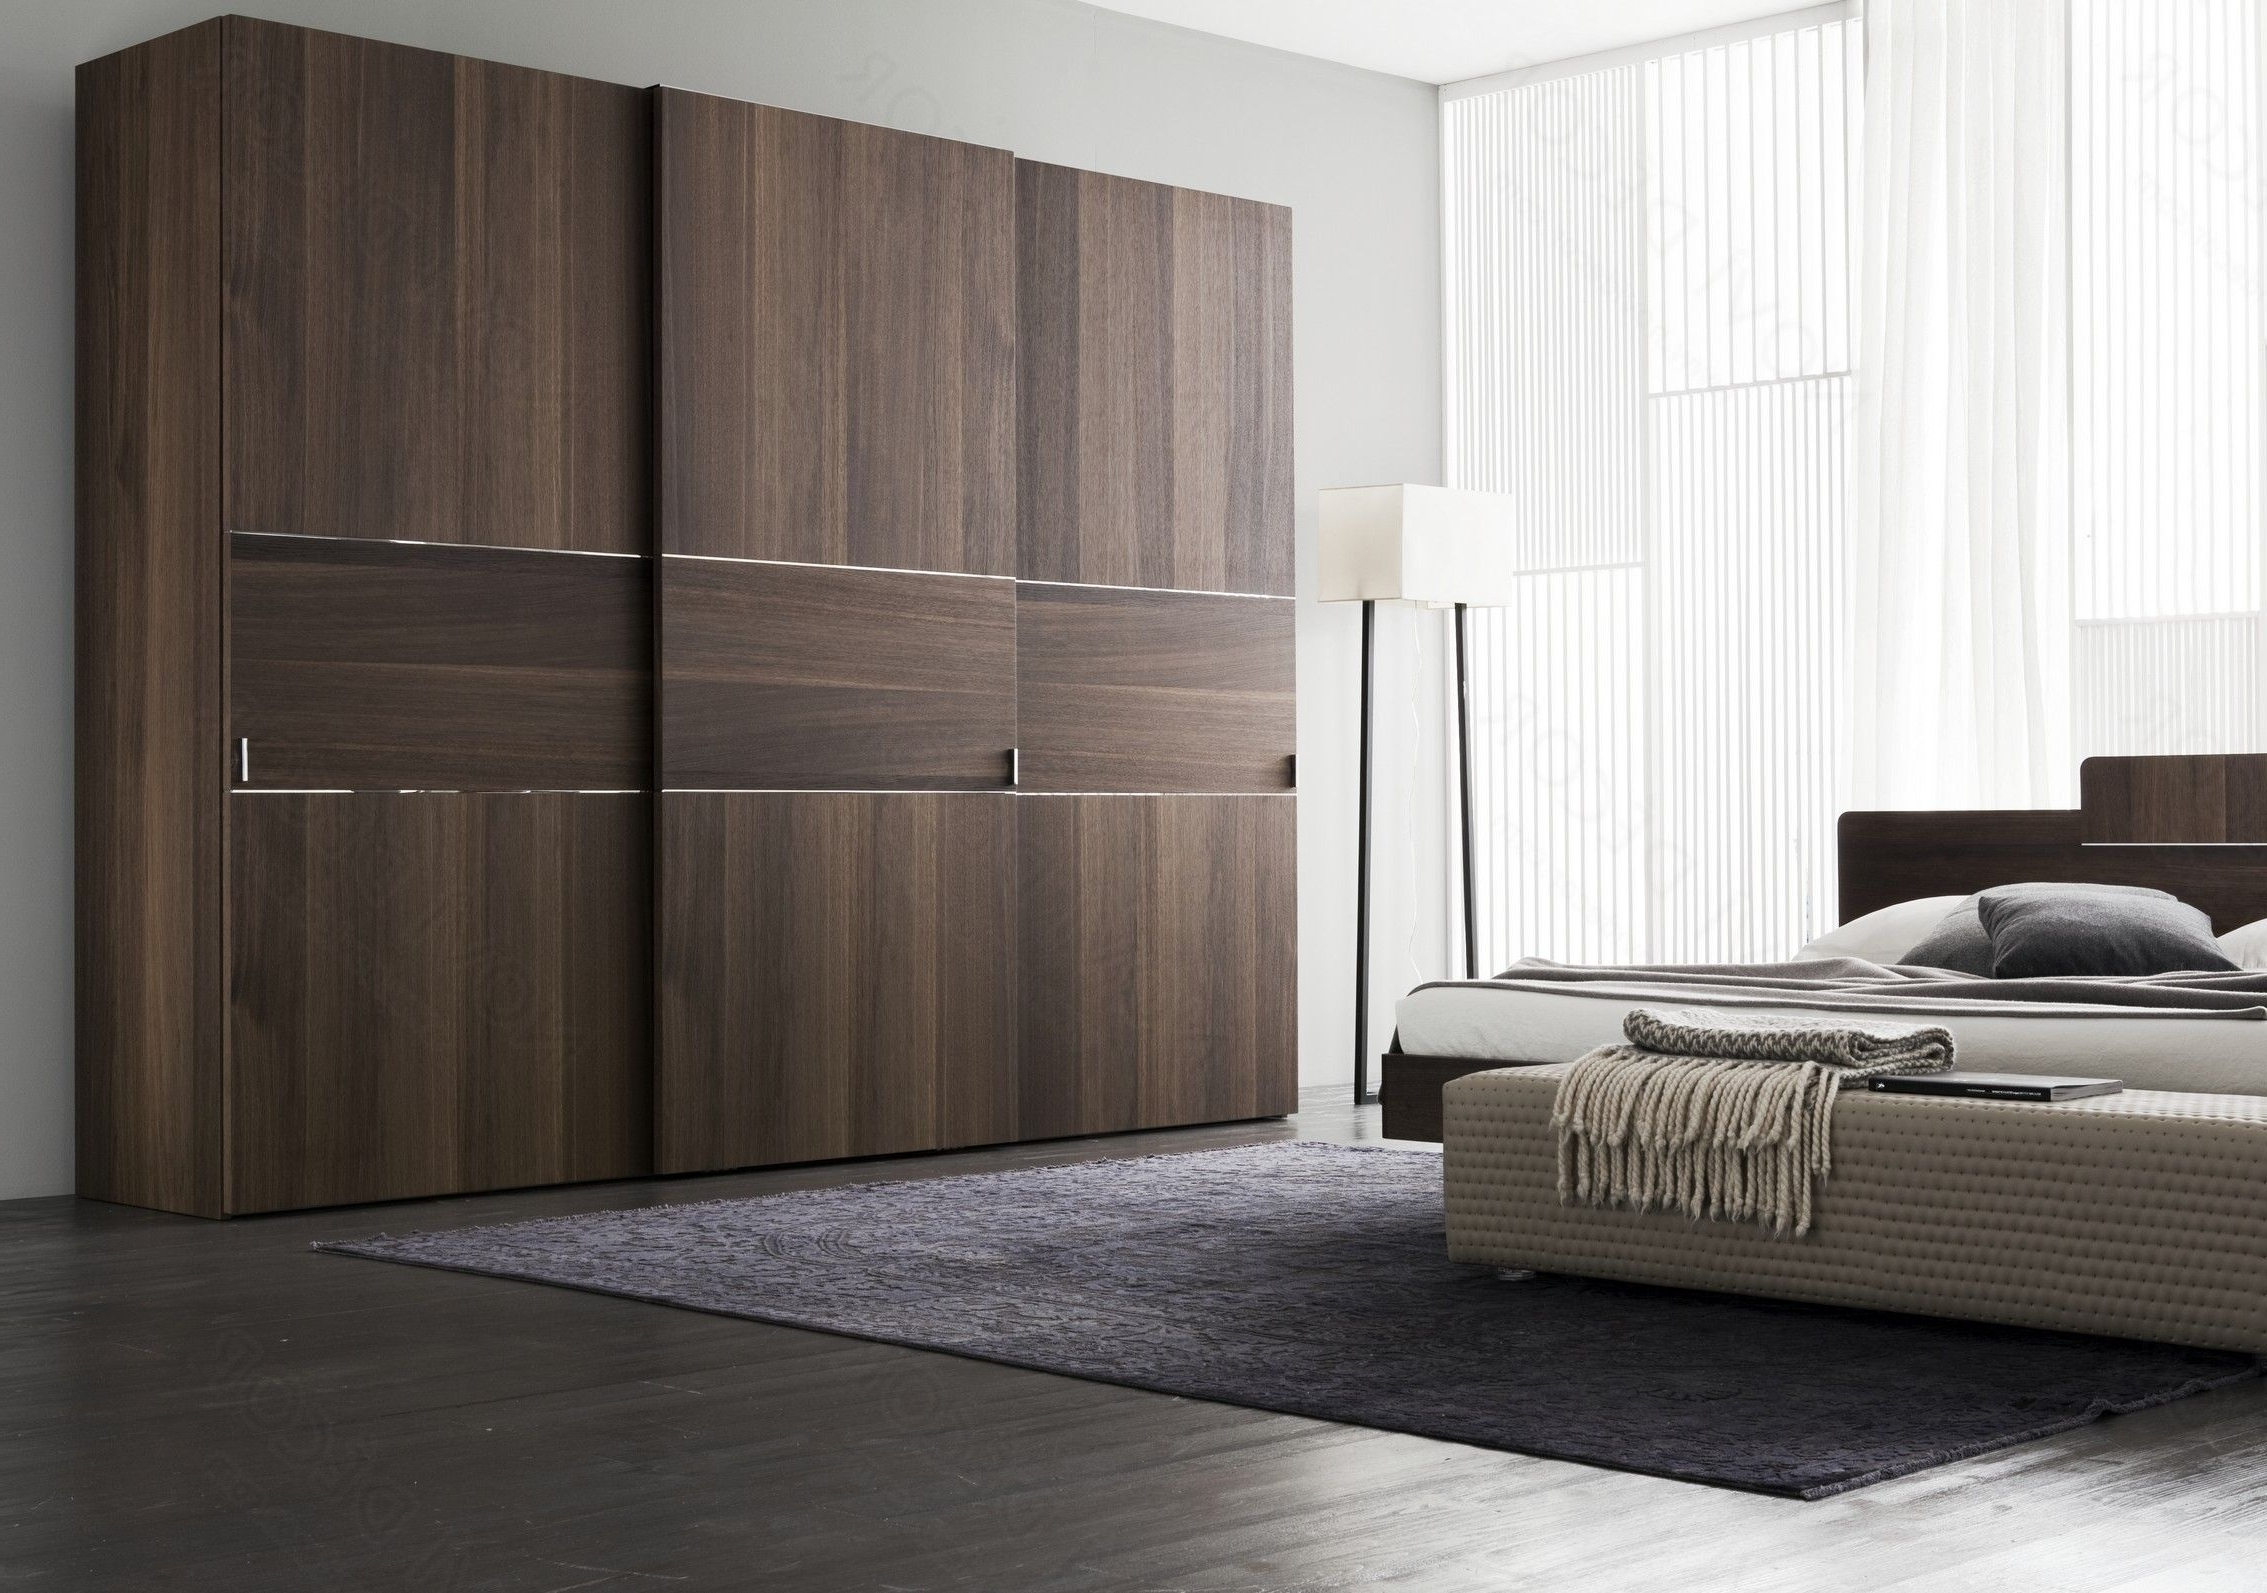 Sliding Wardrobe Doors As Nice Color Combination Furniture For Within Fashionable Chest Of Drawers Wardrobes Combination (View 11 of 15)